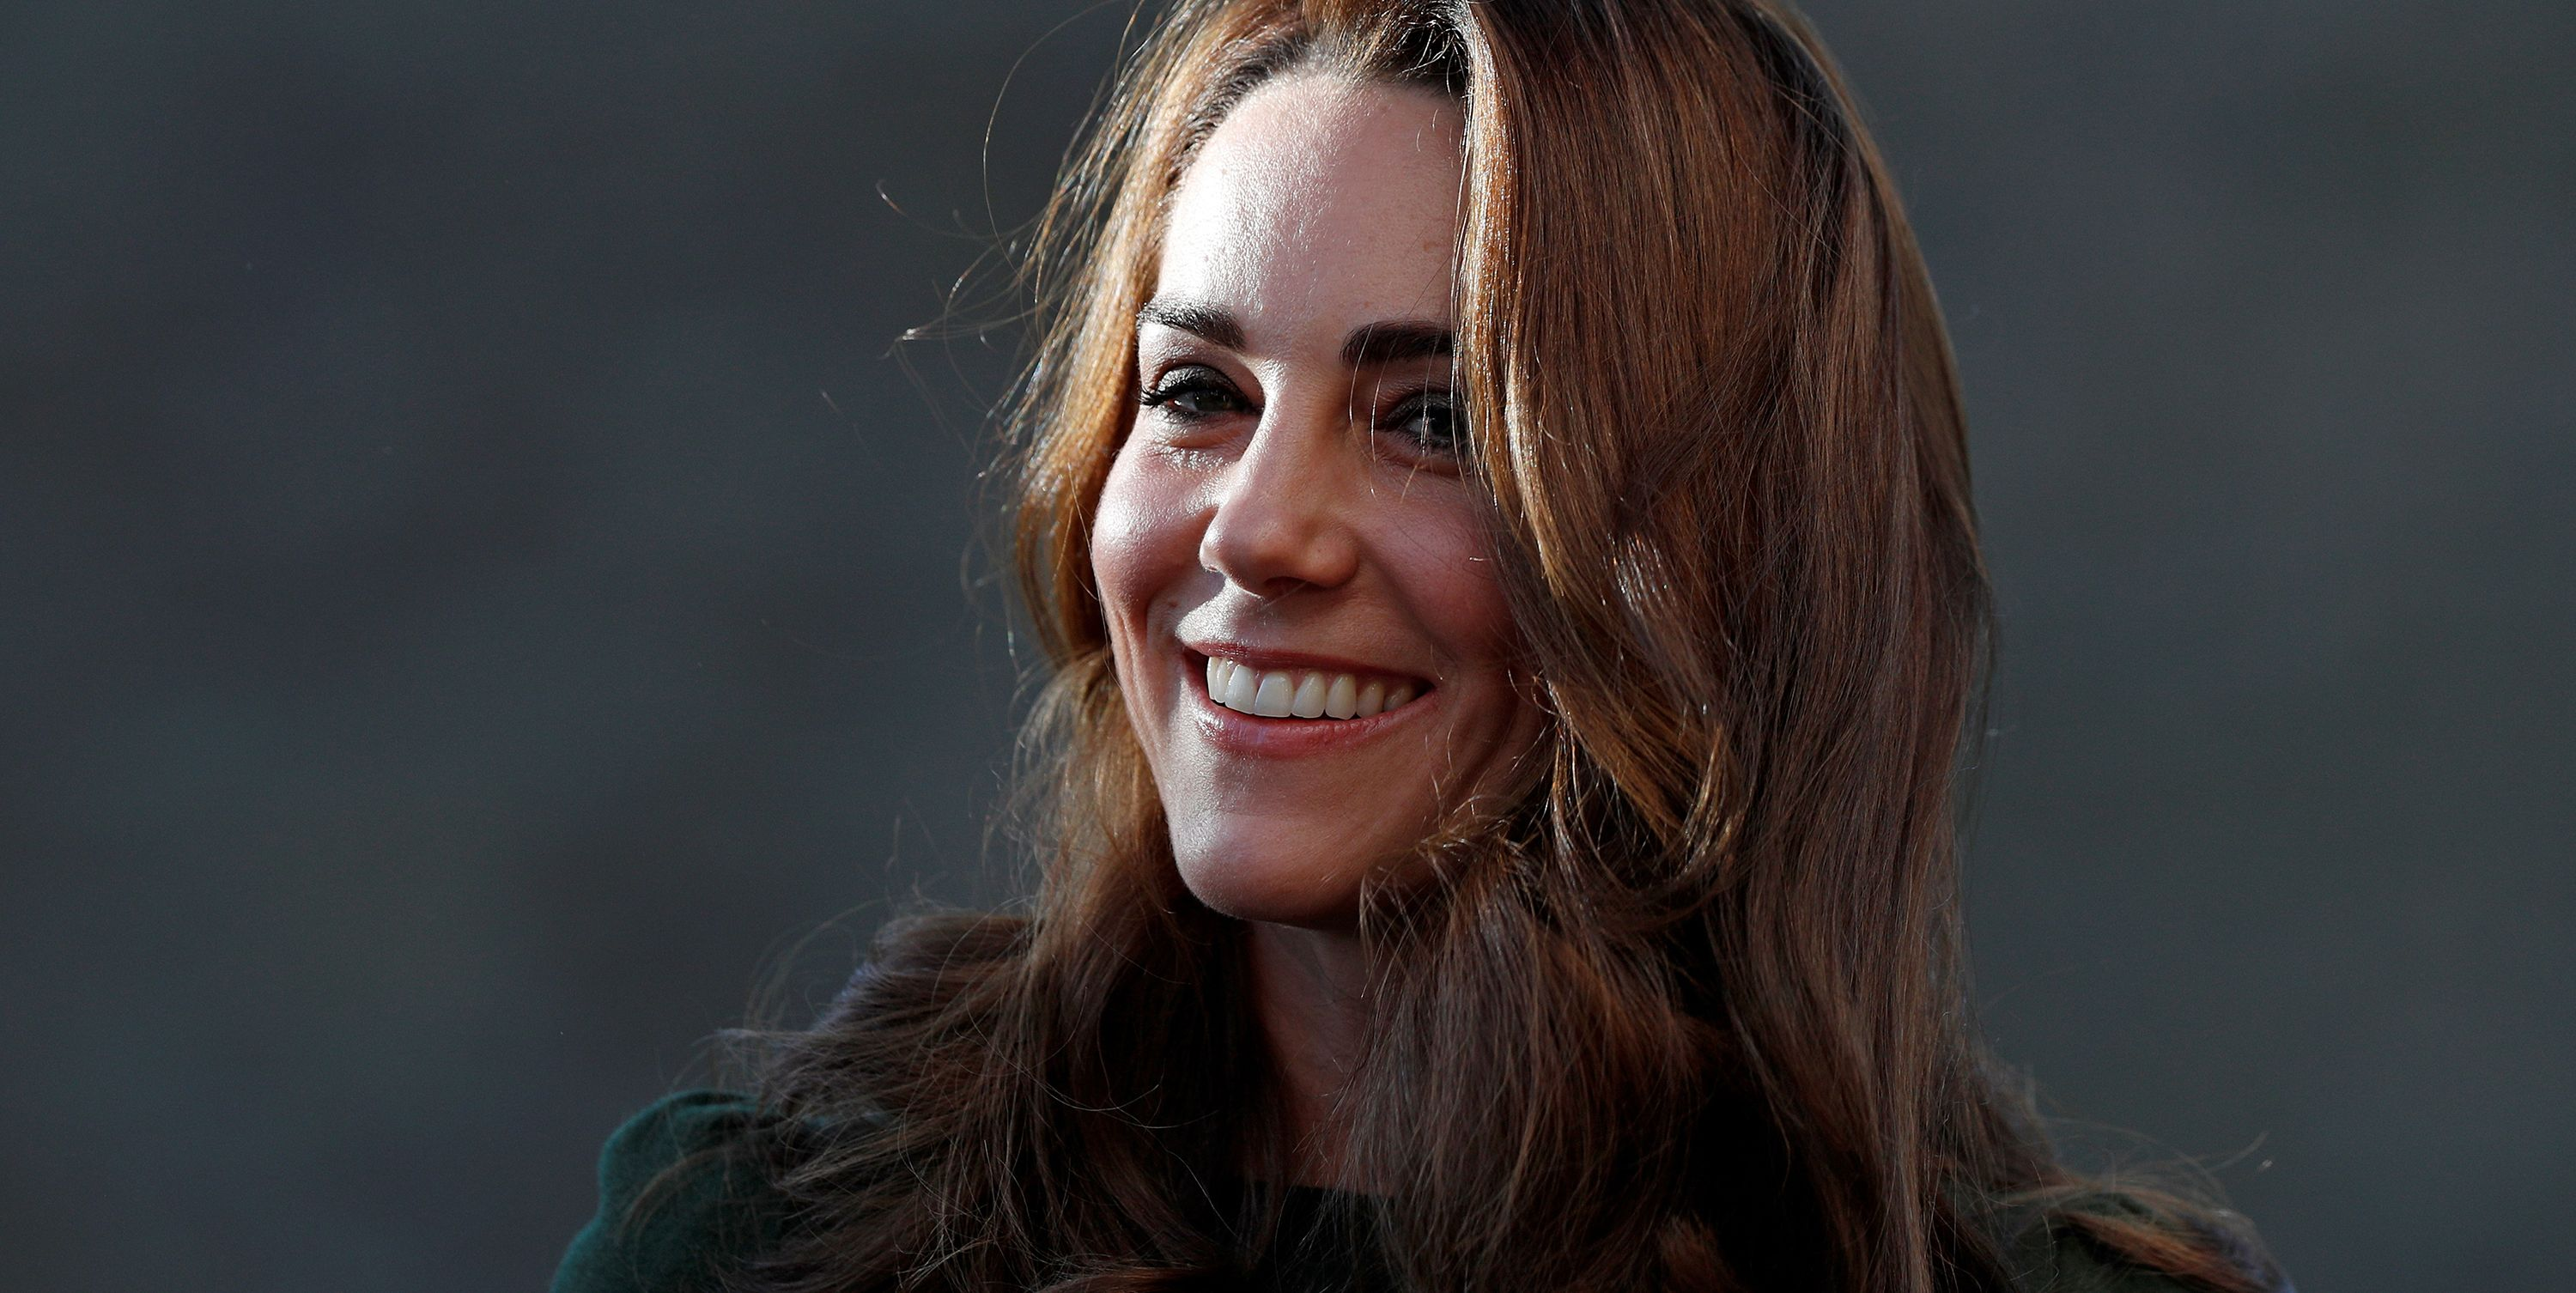 The Duchess of Cambridge opens up about the challenges of motherhood